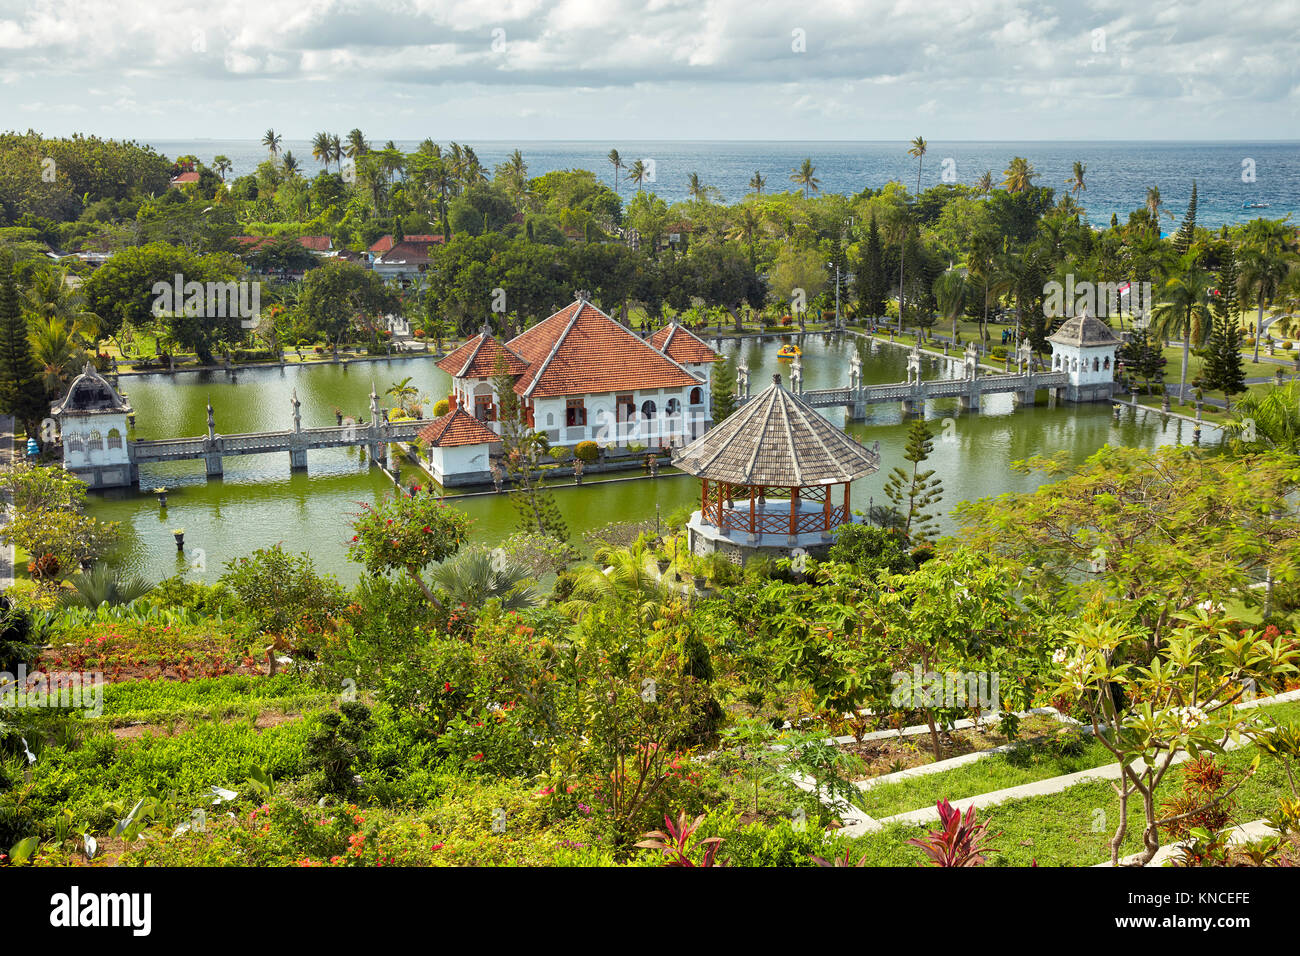 Gili Bale, main building of the Ujung Water Palace (Taman Ujung), surrounded by water and landscaped garden. Karangasem - Stock Image